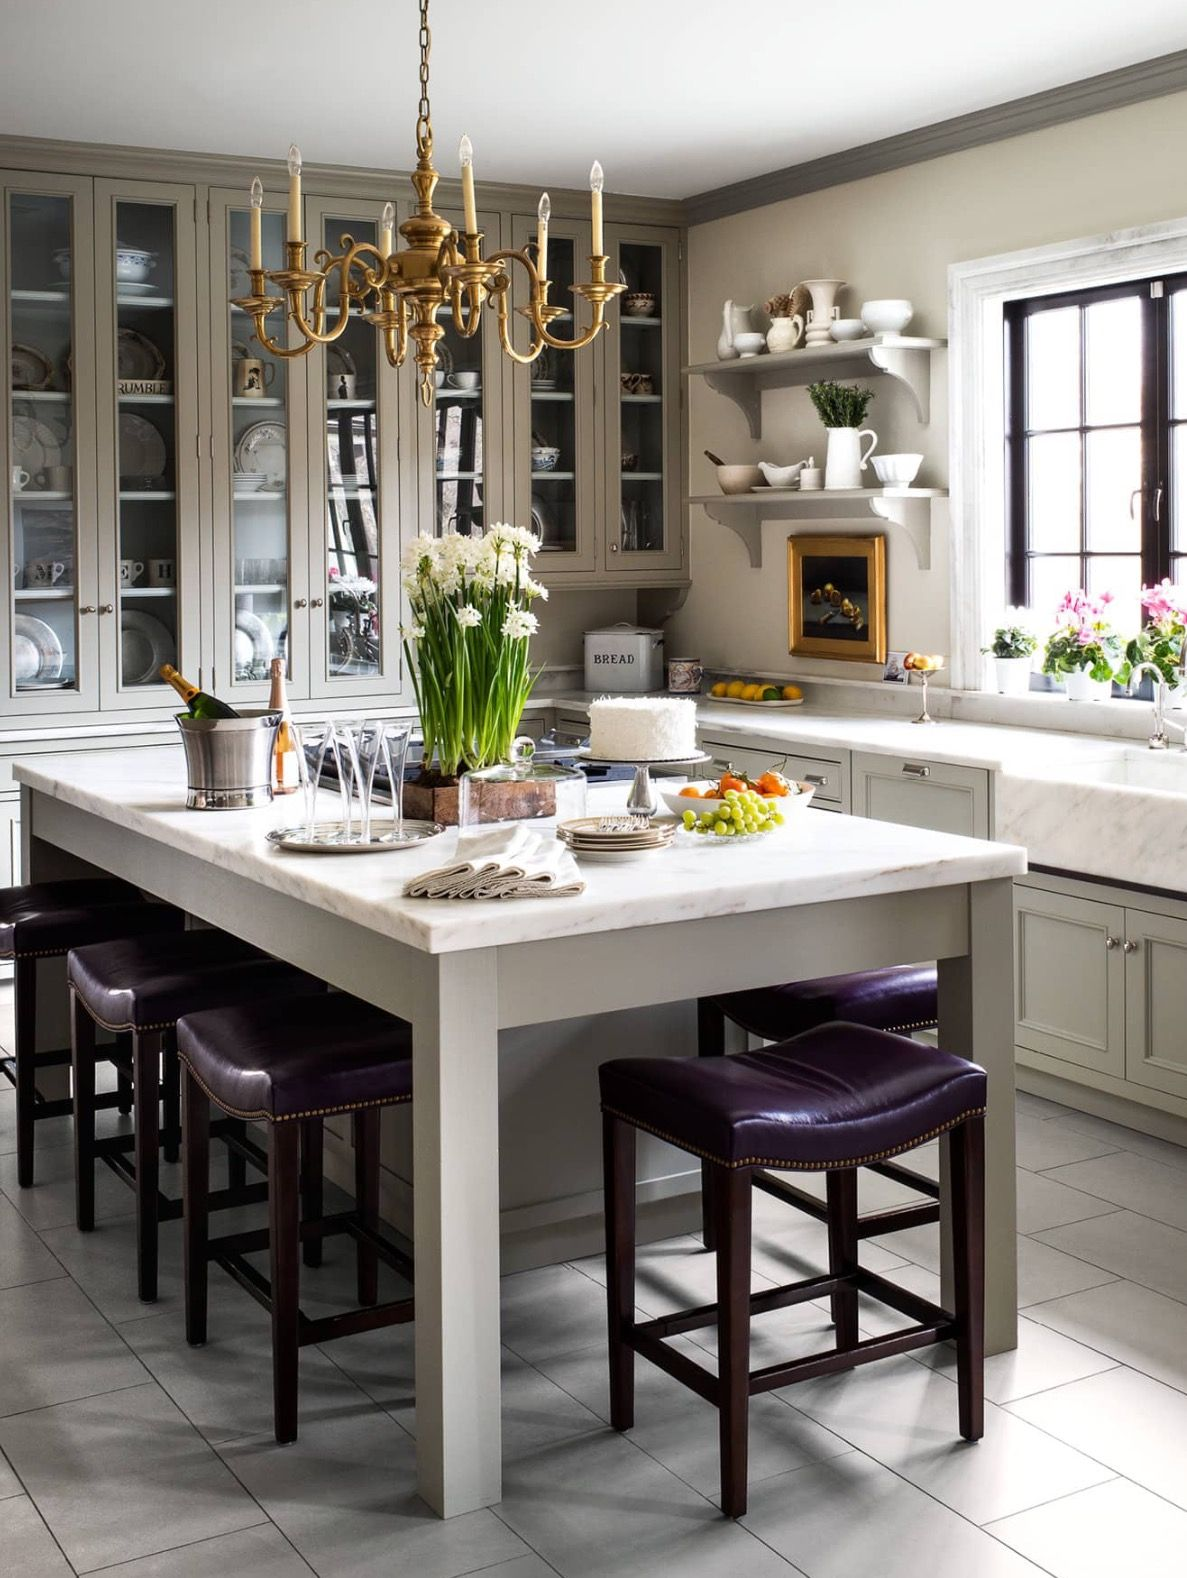 Pin By Altered Posh By L A Barber On Kitchen Kitchen Design Decor Kitchen Design Beautiful Kitchens